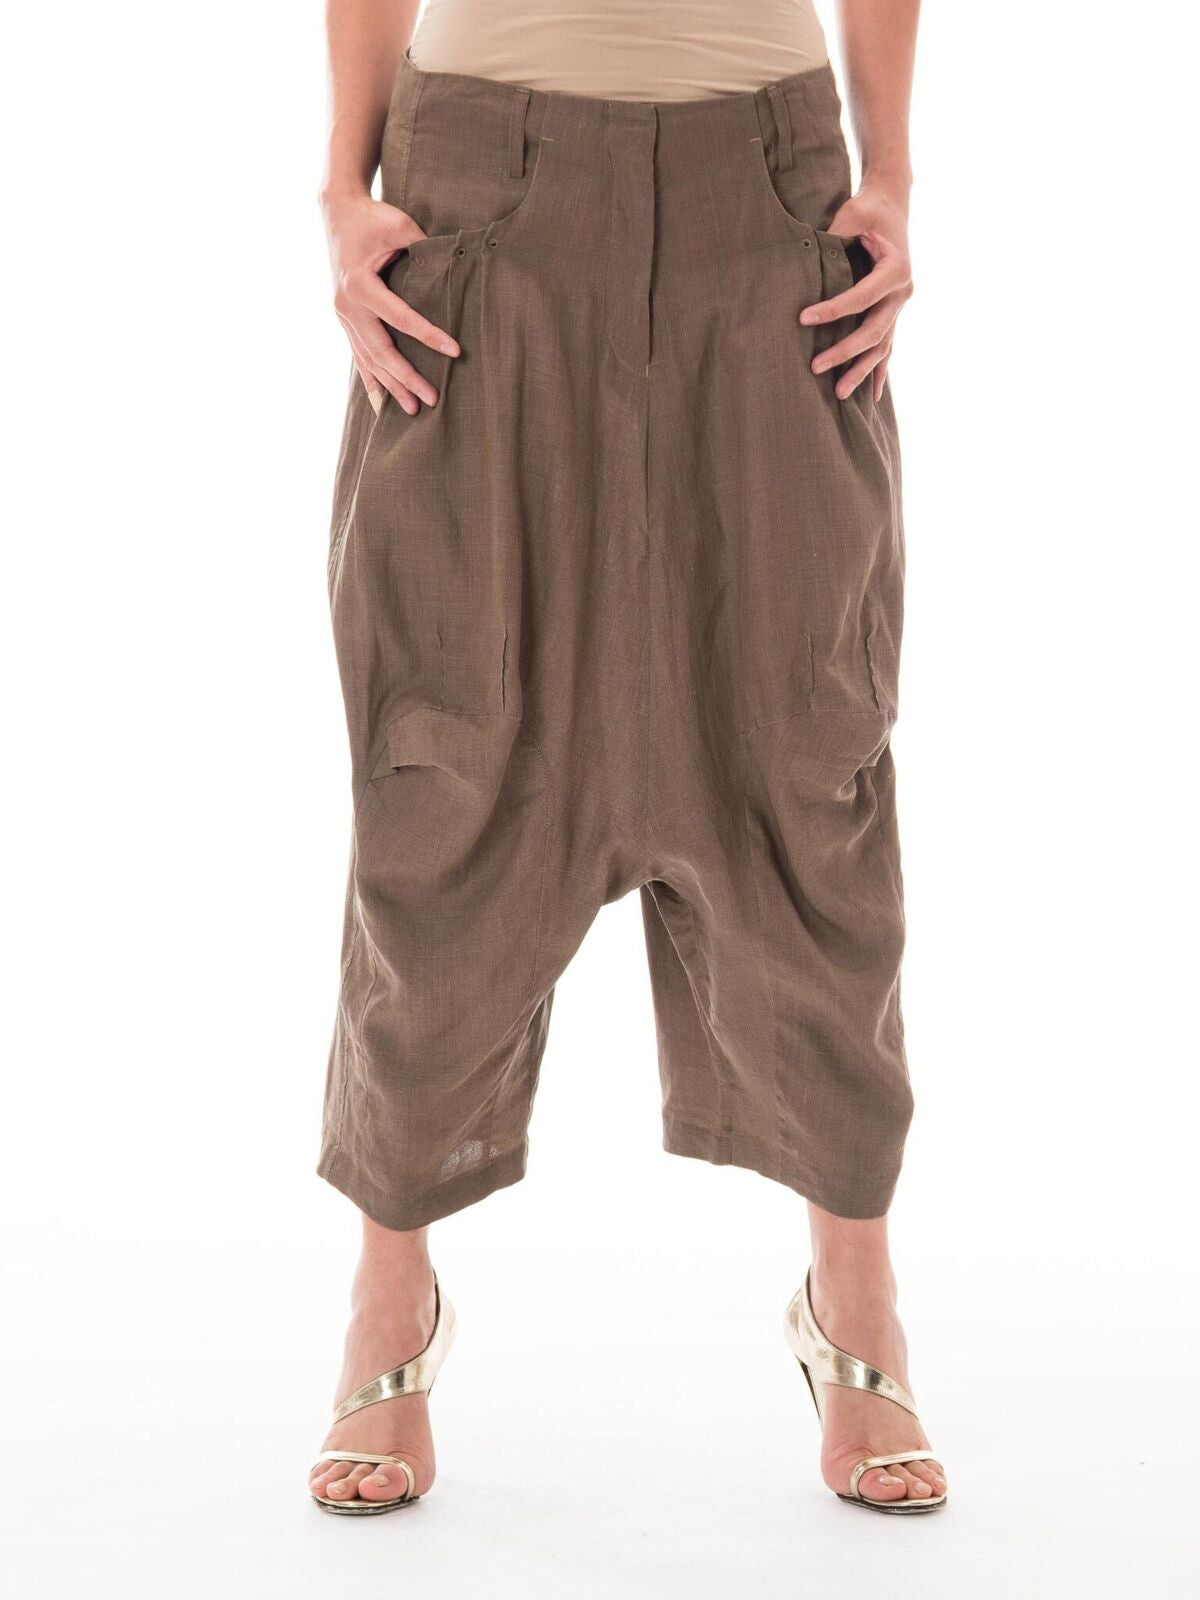 1980S MARITHE + FRANCOIS GIRBAUD Brown Linen Blend Pants